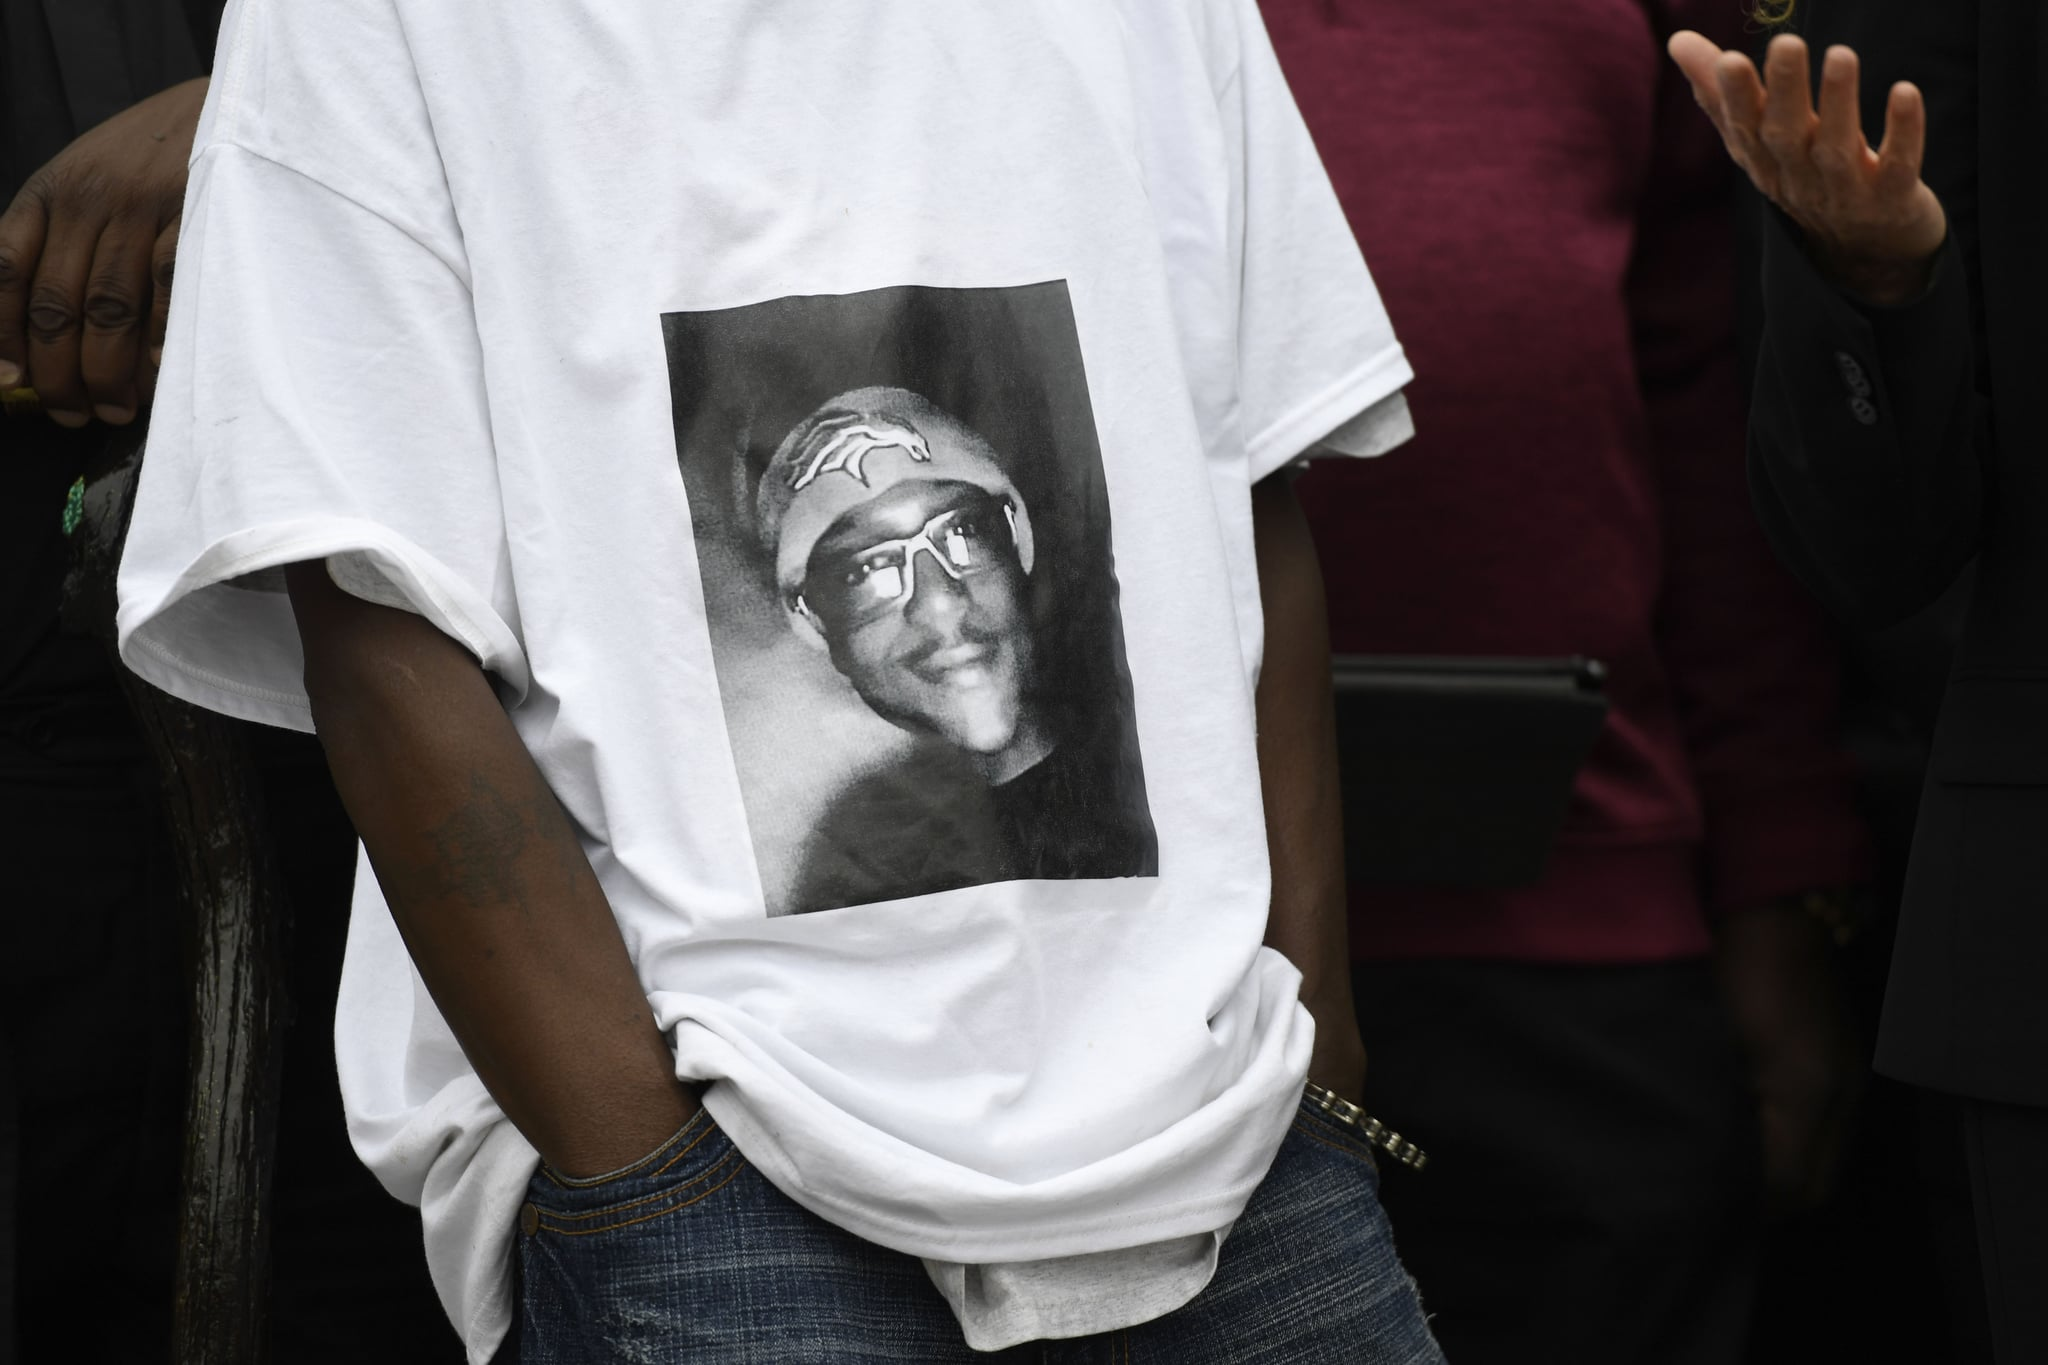 AURORA, CO - OCTOBER 01: LaWayne Mosley, father of Elijah McClain, wears a t-shirt with is son's picture on it during a press conference in front of the Aurora Municipal Centre October 01, 2019. Family, friends, legal counsel, local pastors and community organisers were calling for justice for the officer-involved death of his son Elijah McClain in front of the Aurora Municipal Centre October 01, 2019. Elijah was confronted by Aurora police officers in a 911 complaint August 24, 2019, a violent struggle ensued, Elijah became unconscious in the the struggle. While being transported to a hospital, he had a cardiac arrest. Elijah McClain died August 30th, 2019 after he was taken off life support. (Photo by Andy Cross/MediaNewsGroup/The Denver Post via Getty Images)